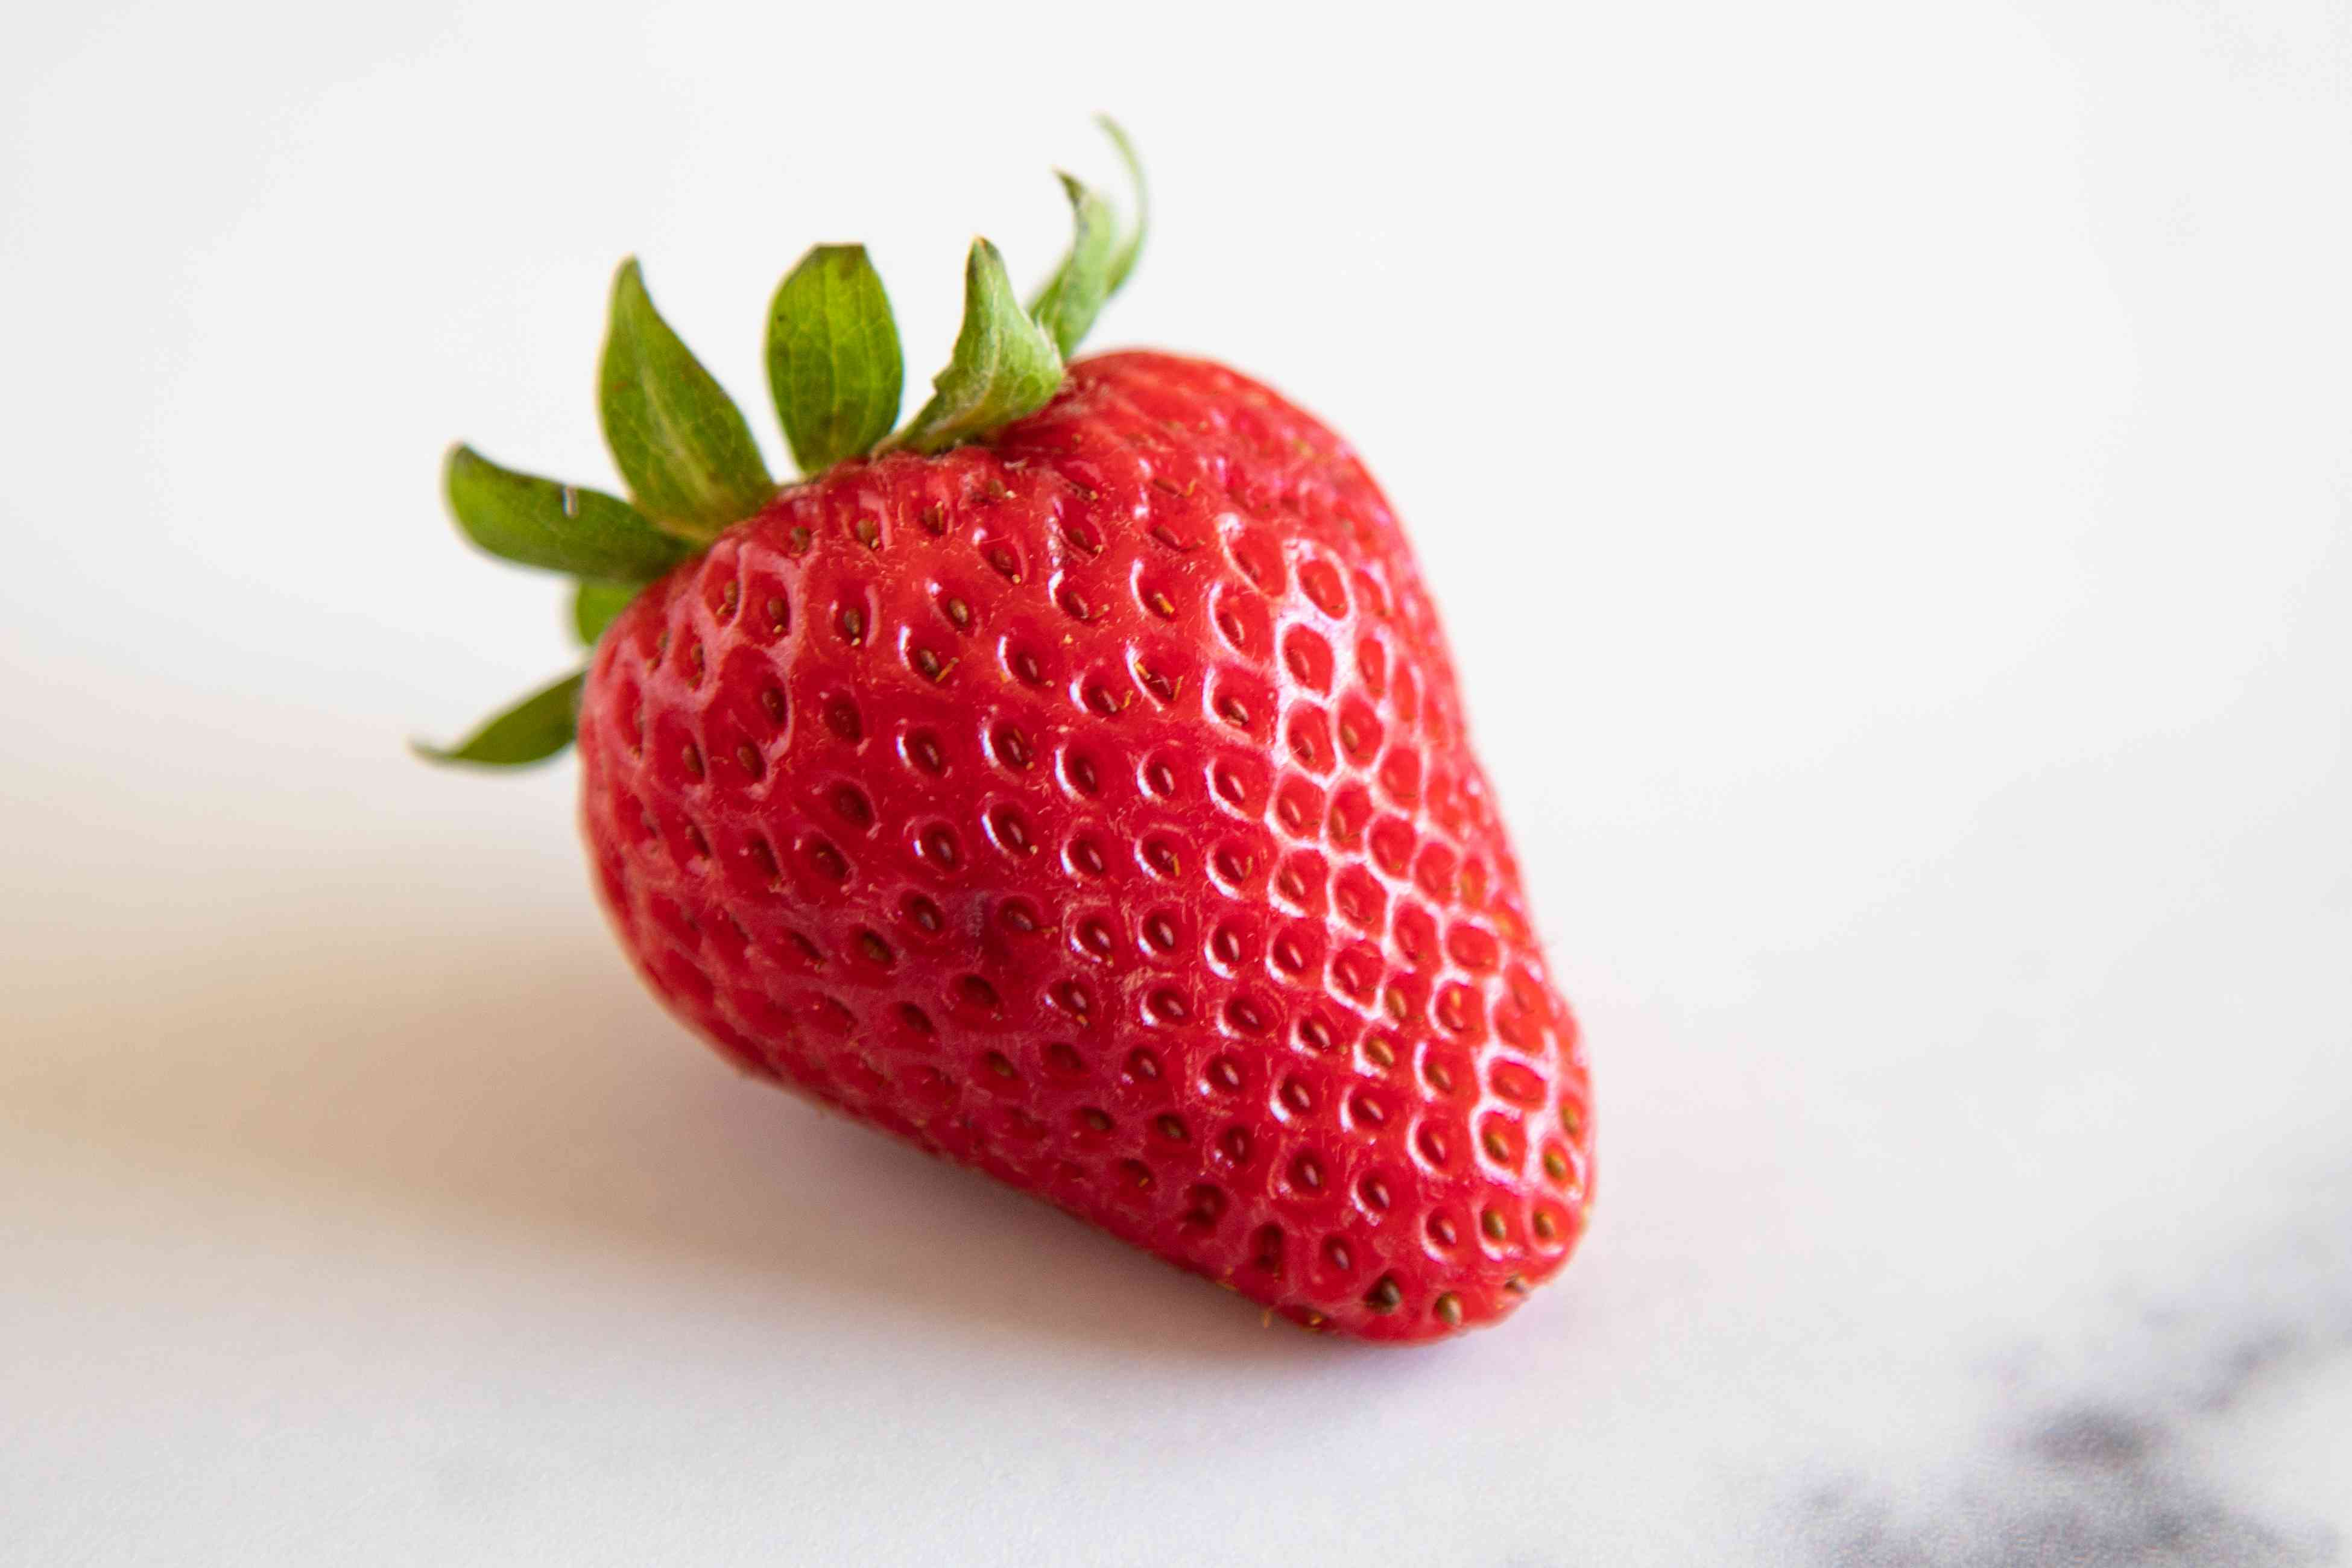 Close up of perfectly red strawberry